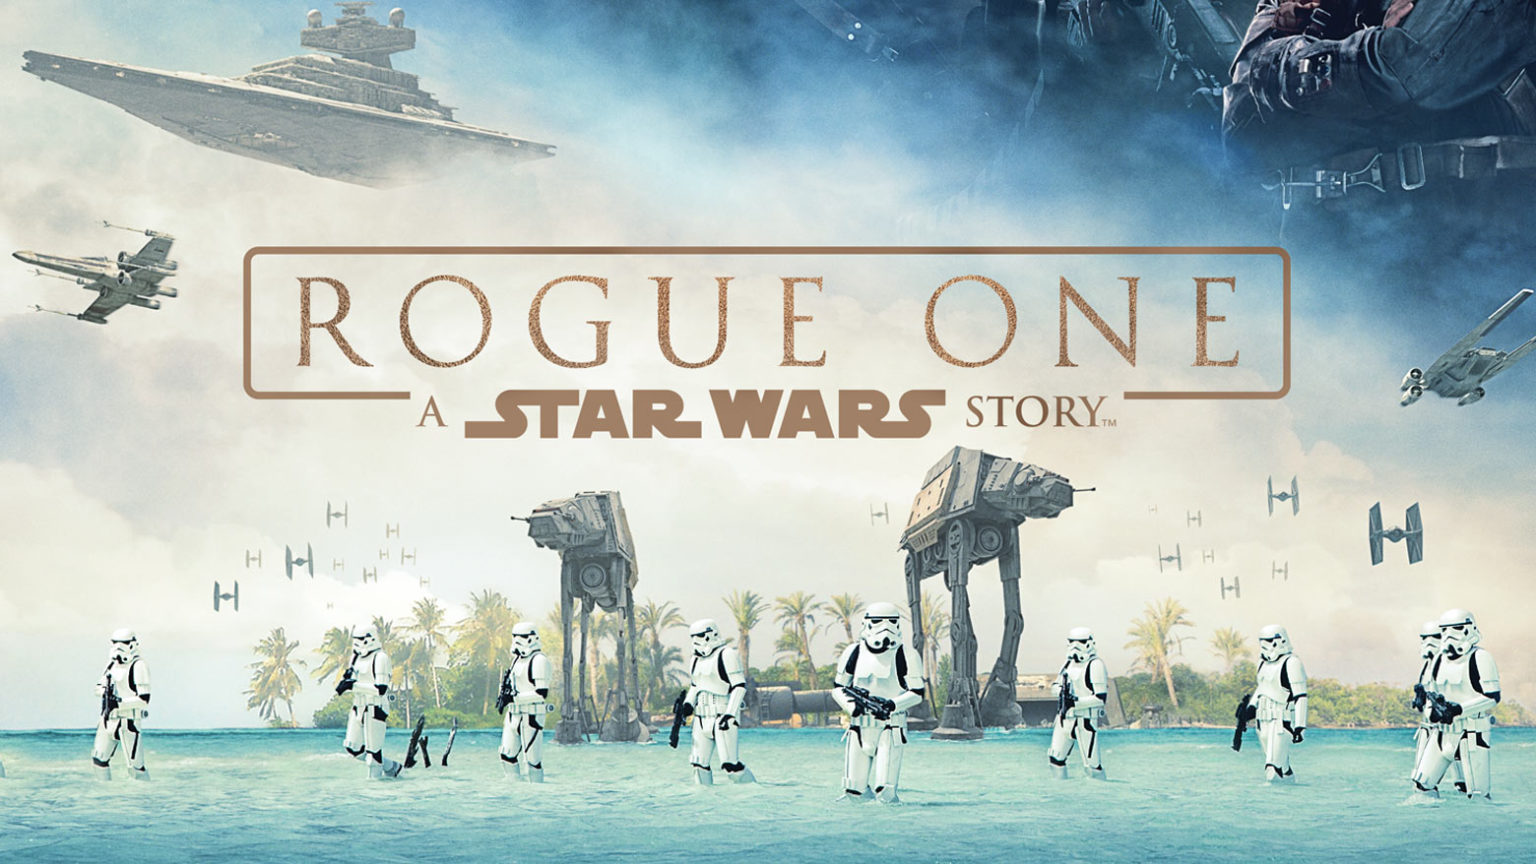 HandShaKing | 10 things that Rogue One got perfectly right